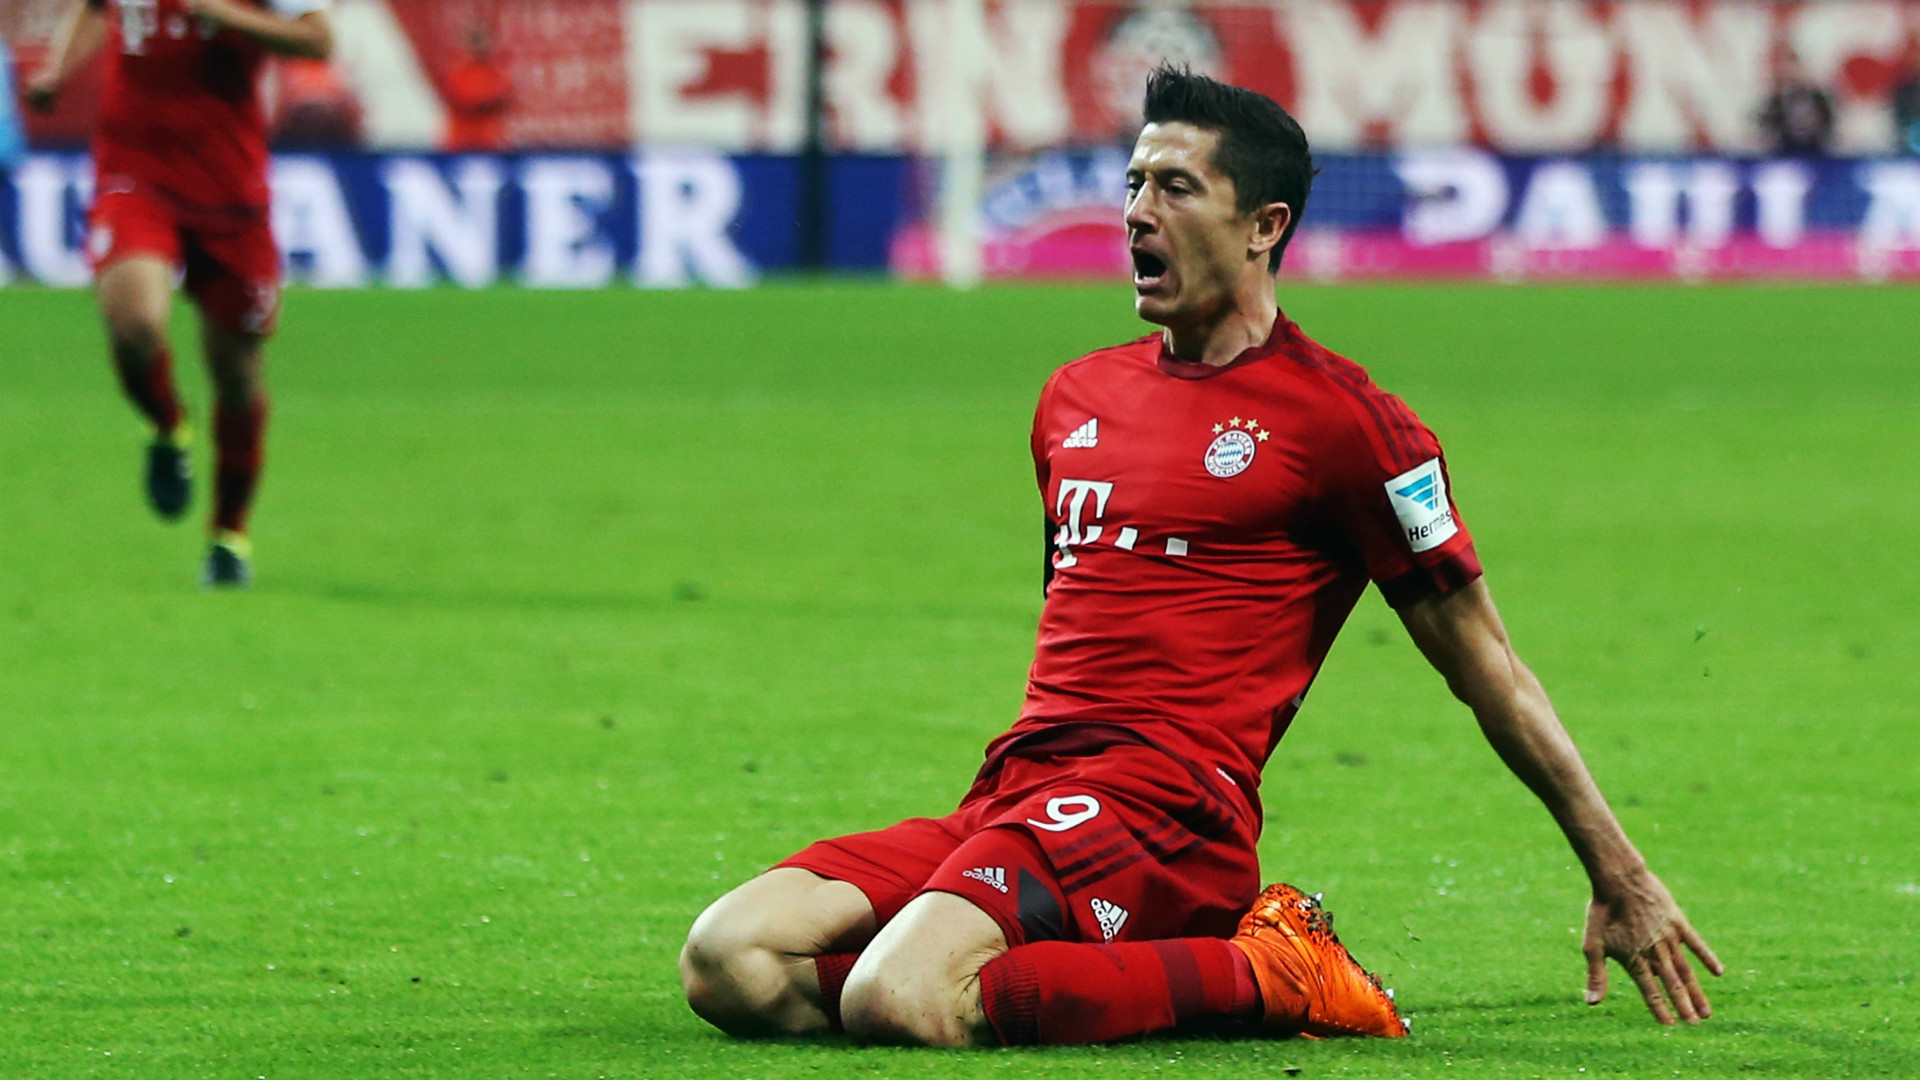 Bayern Munich: Robert Lewandowski going nowhere - Bundesliga 2018